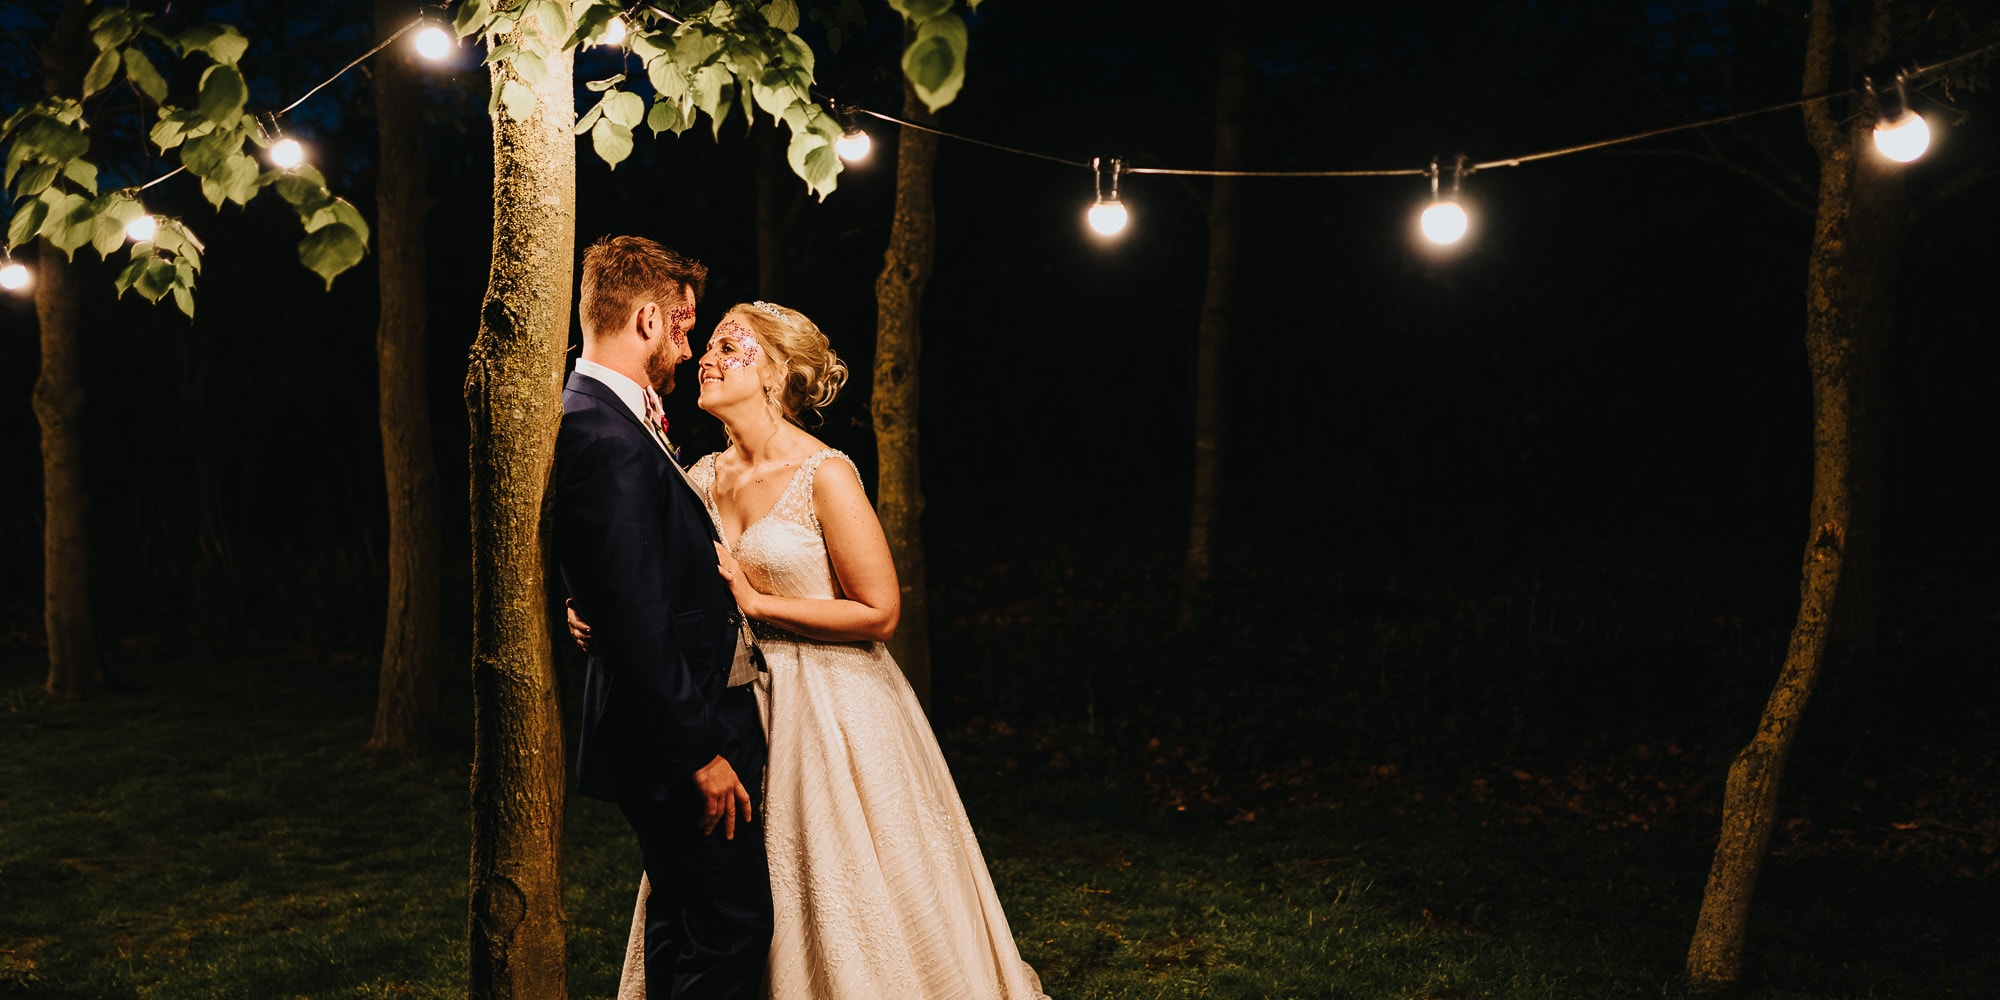 Bride and groom lean in for a kiss under festoon lights at Shustoke Barns Wedding Photography